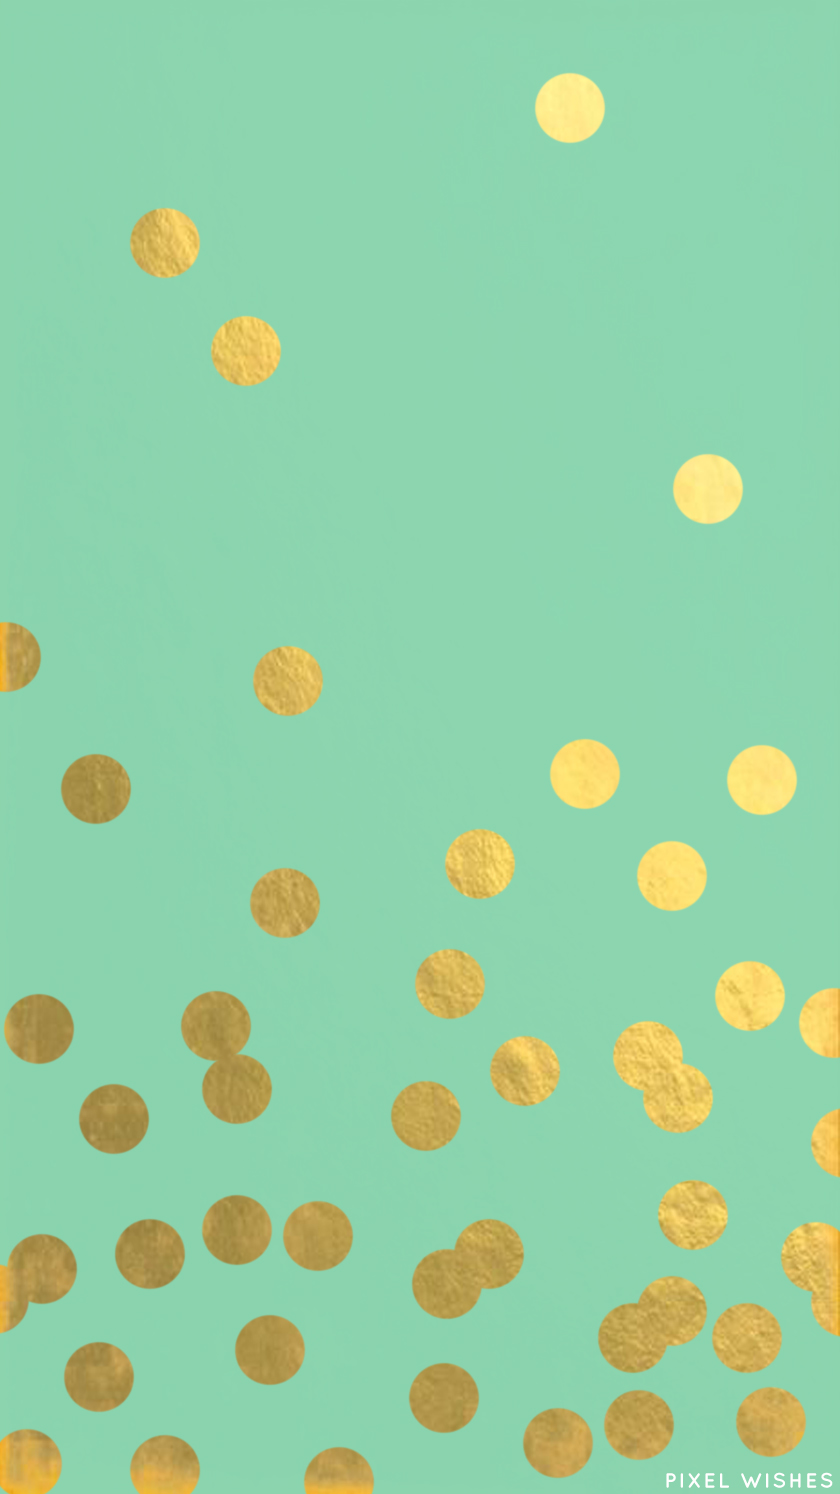 a-Mint-and-Gold-Confetti-iPhone-that-I-made-to-match-my-Kate-Spade-Phone-Case-https-wallpaper-wp5803216